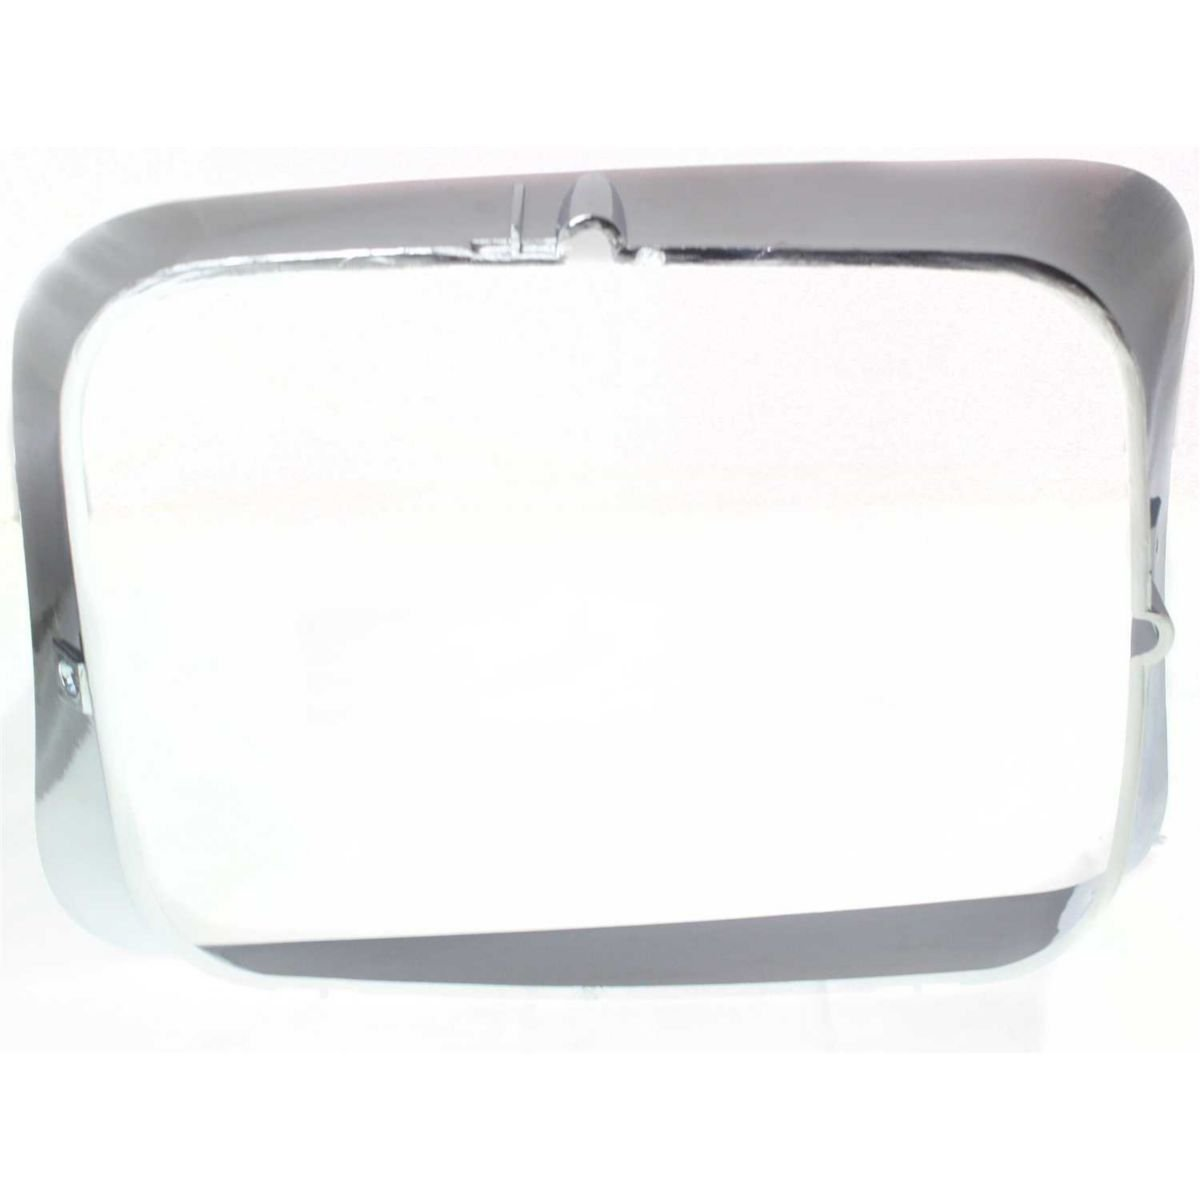 DAT AUTO PARTS Left Driver Side Headlamp Door Cover Replacement for 92-93 Dodge D350 Pickup Ramcharger CH2512118 Chrome